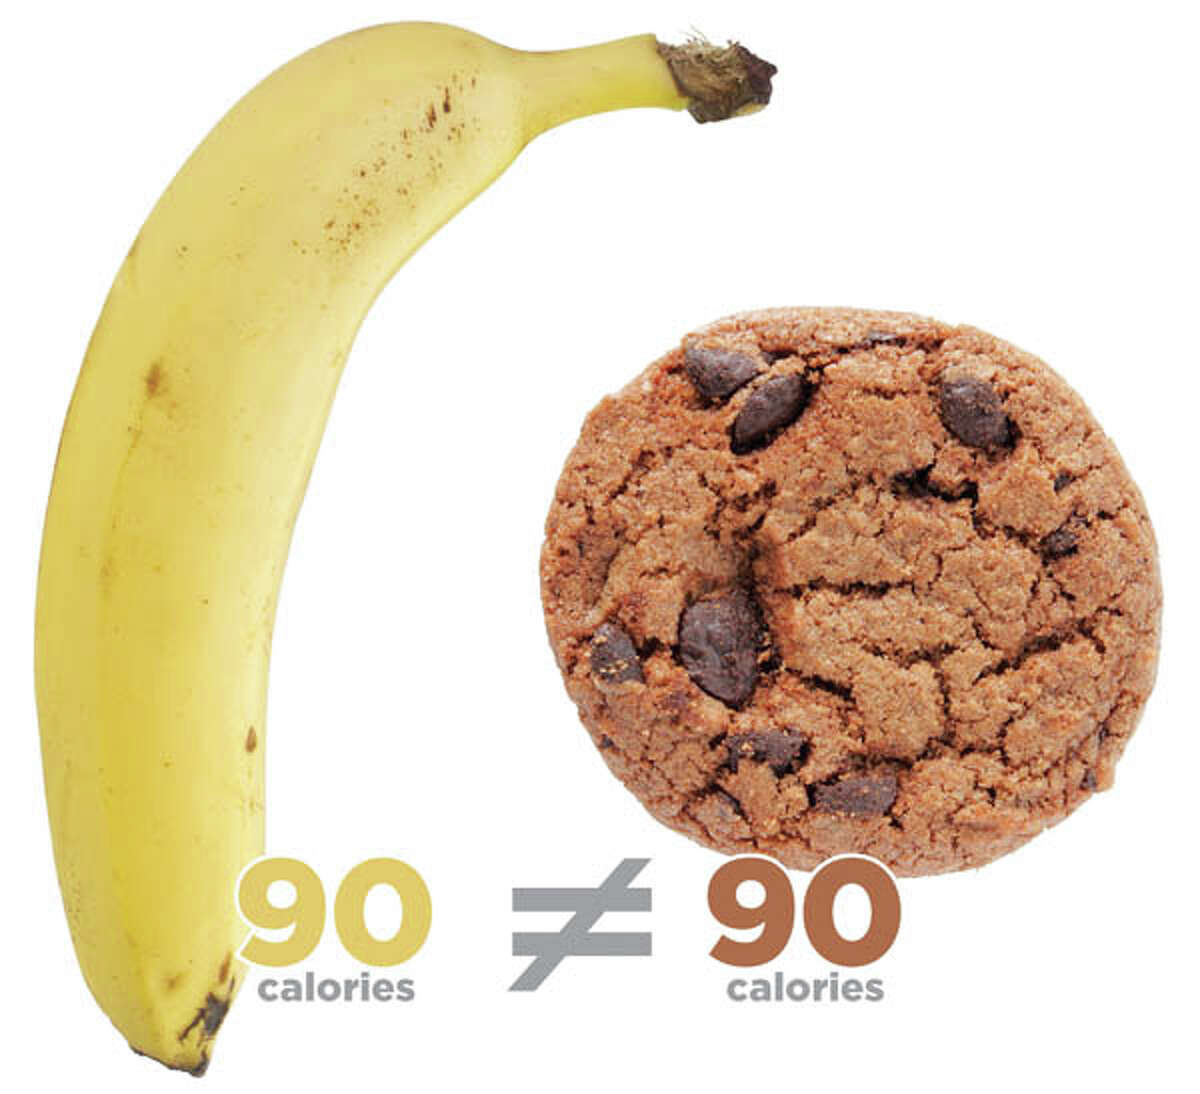 While a sugar-or fat-free cookie and a banana might have the same calorie count, their nutritional value is wildly different. (Photos: Dreamstime.com. Banana, (c) Iskander1; Cookie, (c) Ferli Achirulli Kamaruddin.)